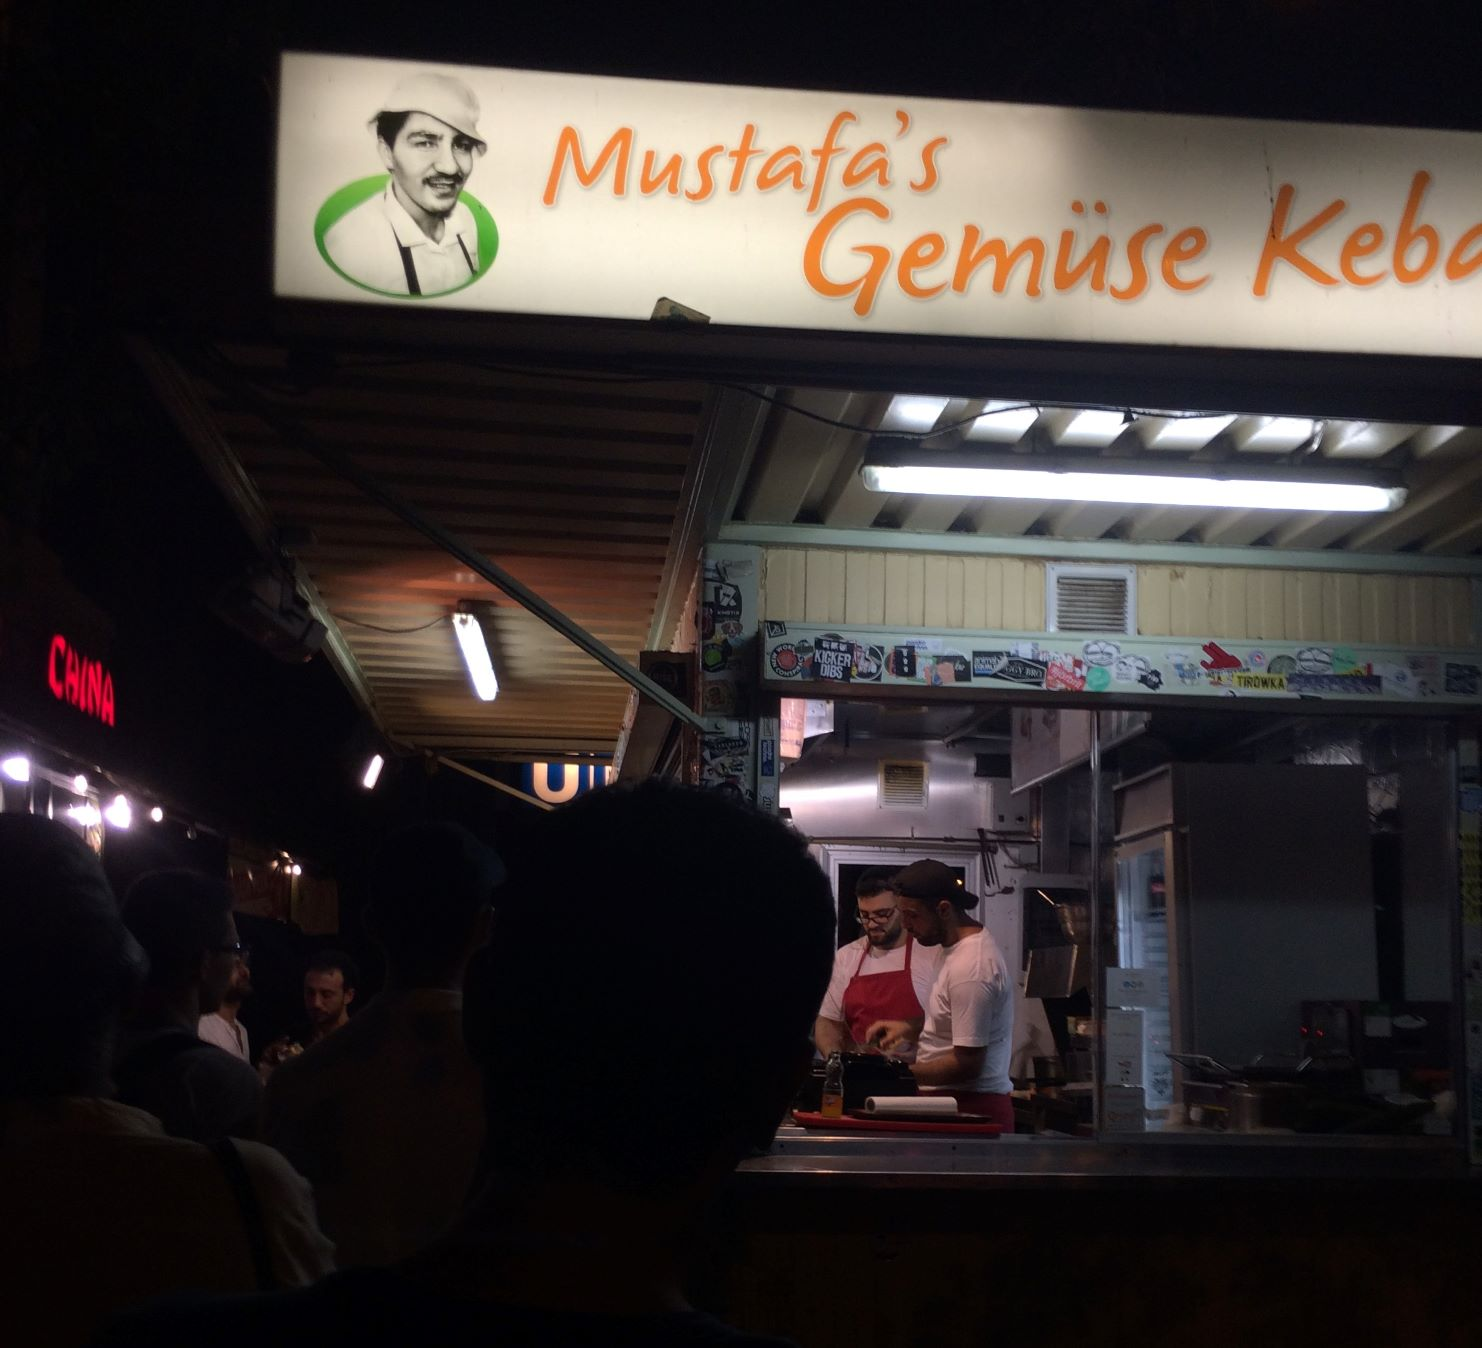 One of the more notorious and popular Doner Kebab stands, one which happened to be quite convenient for me to get to.